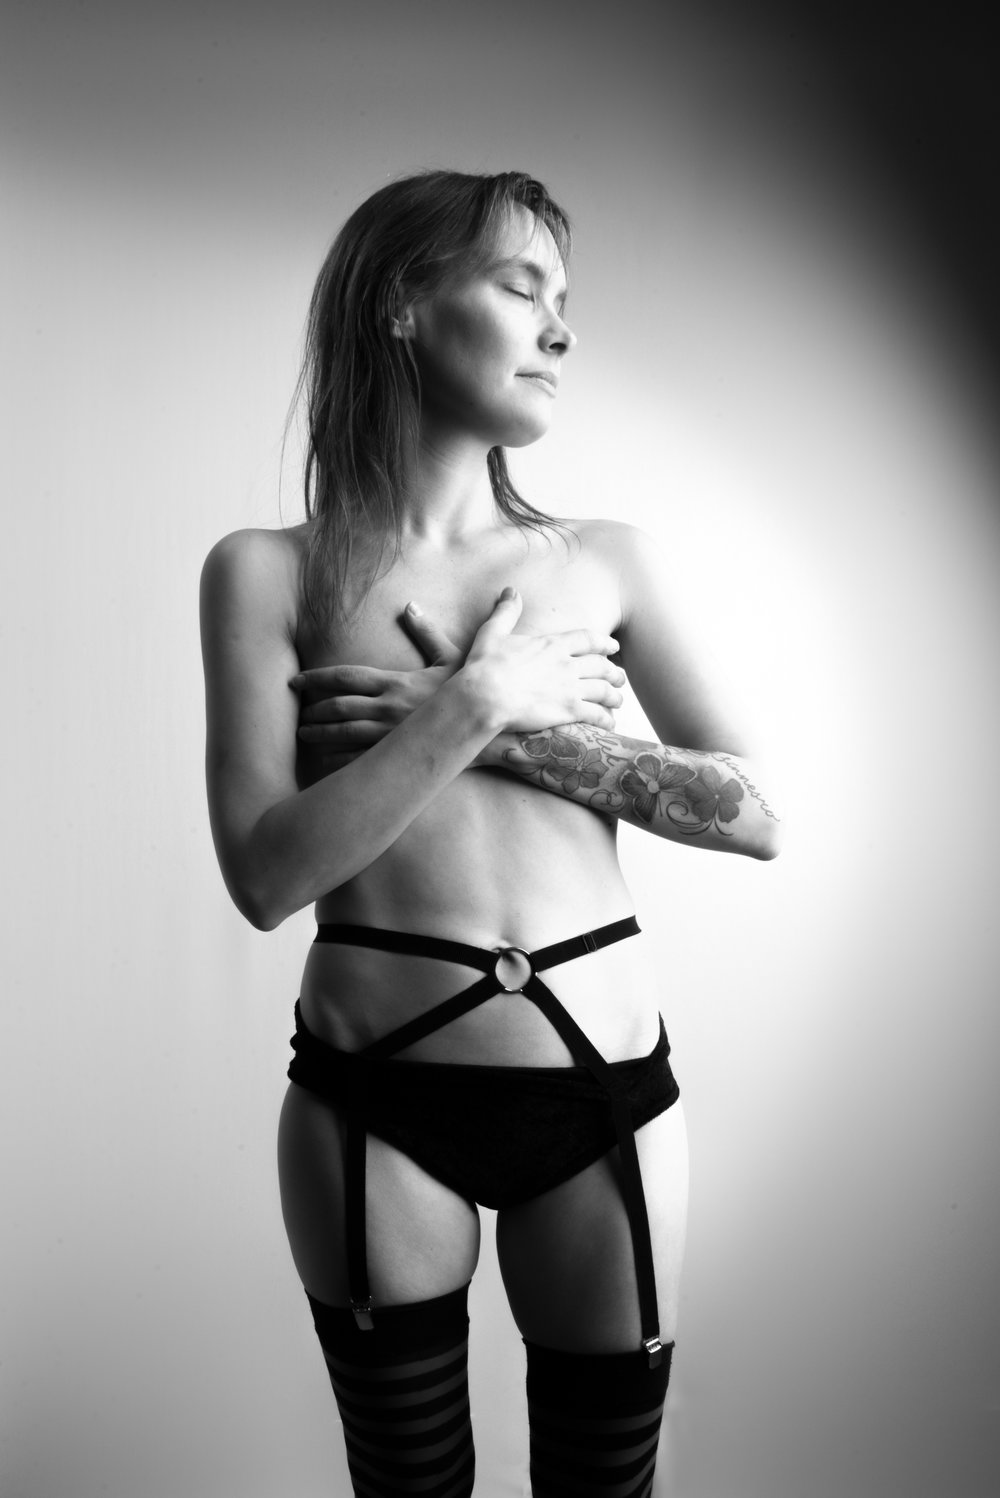 Model/Modell - Susanne Persson